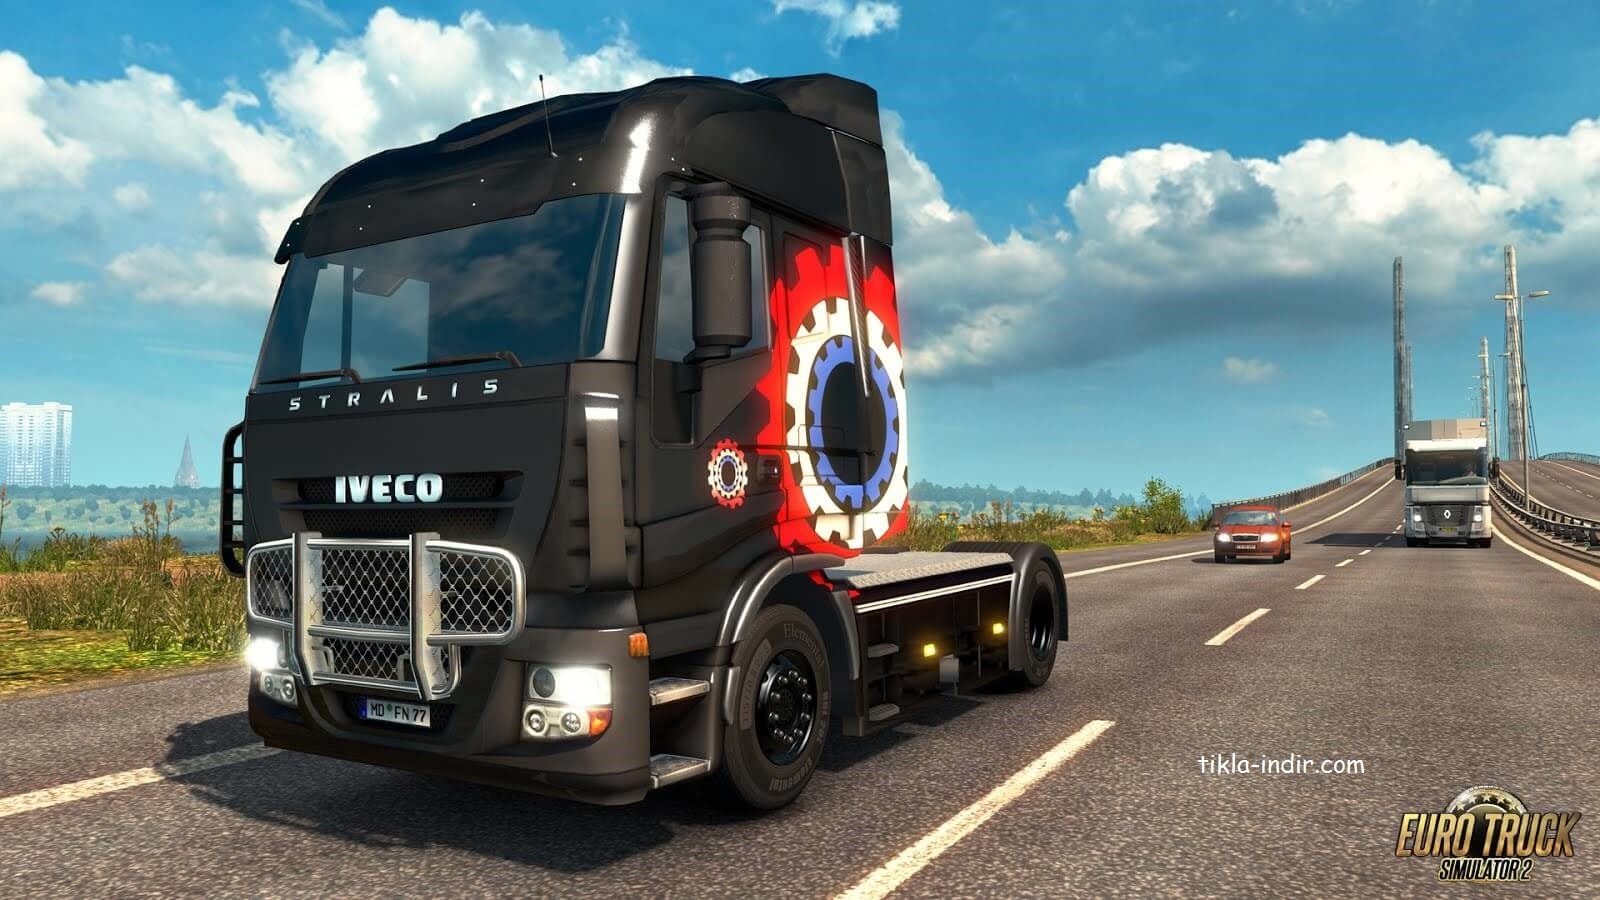 Euro Truck Simulatör 2 v1.34.0.34 Full PC + Torrent İndir